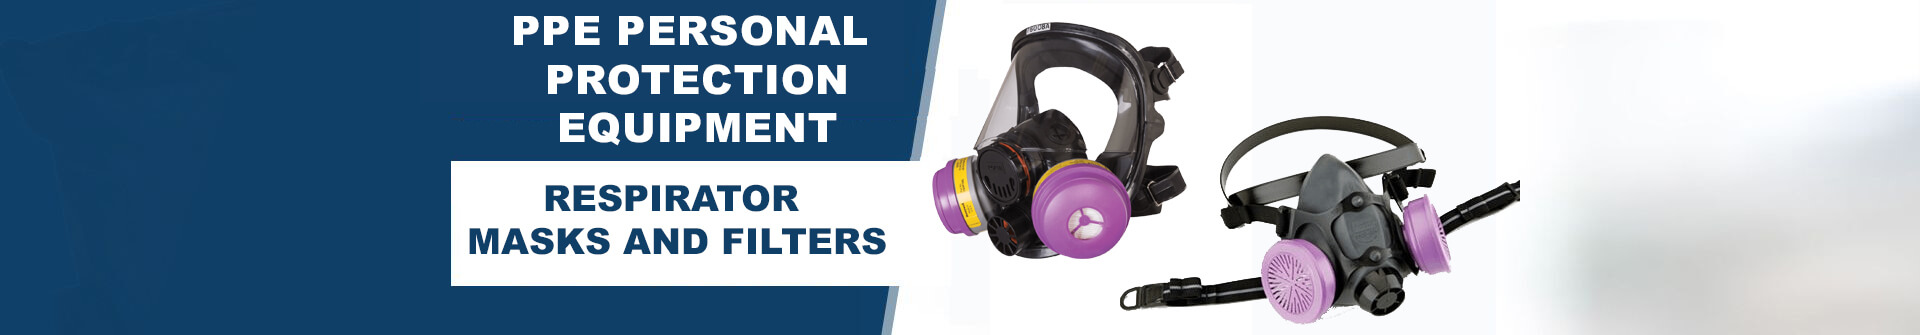 Personal Protection Equipment   -  Respirator Masks and Filters